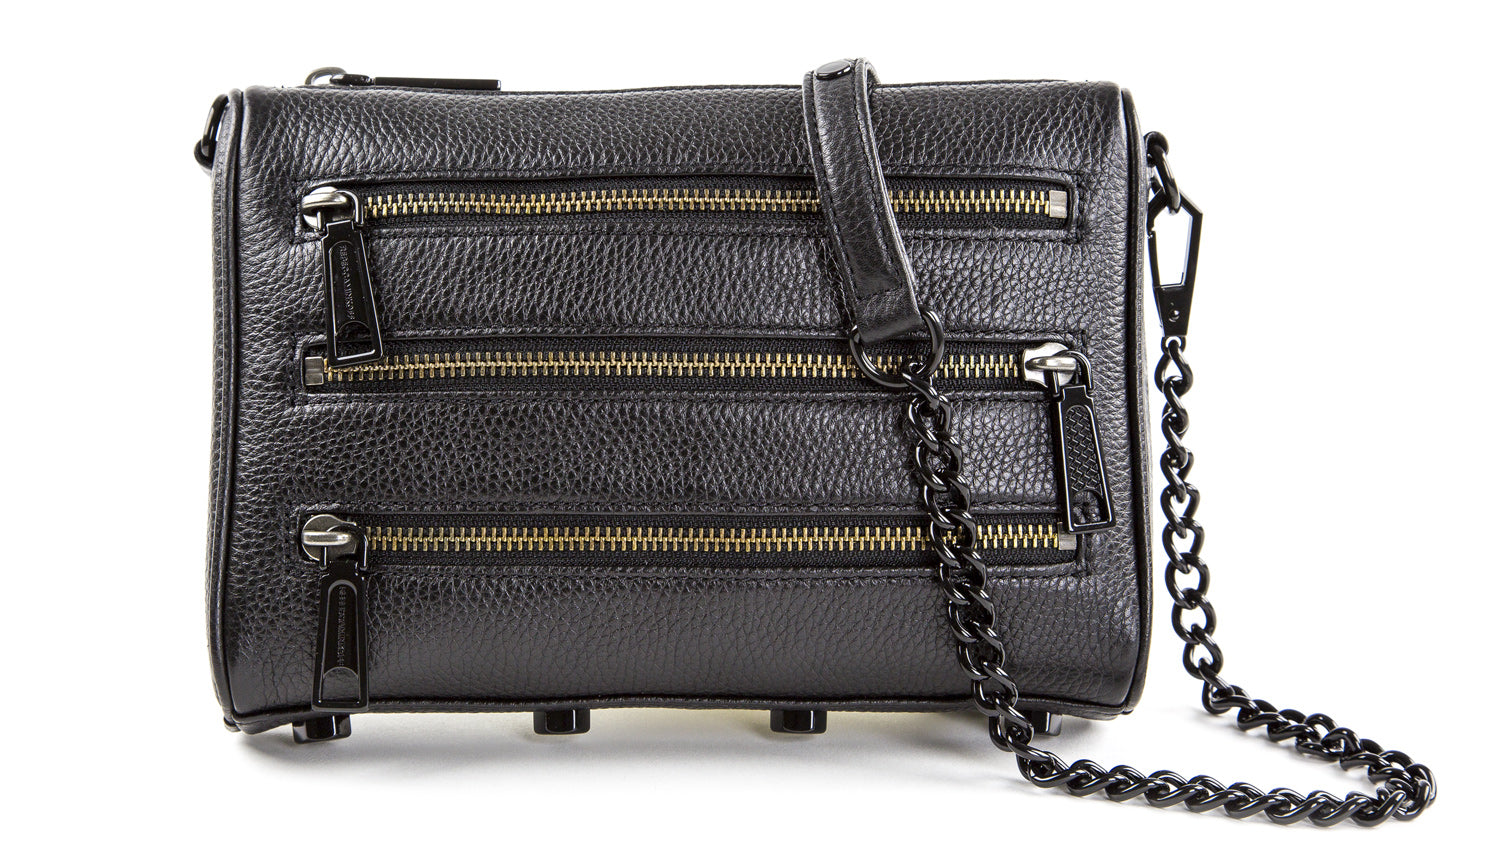 19b280ffd REBECCA MINKOFF Black/Black Shellac Mini 5-Zip Cross-body Bag $195 NEW –  Walk Into Fashion